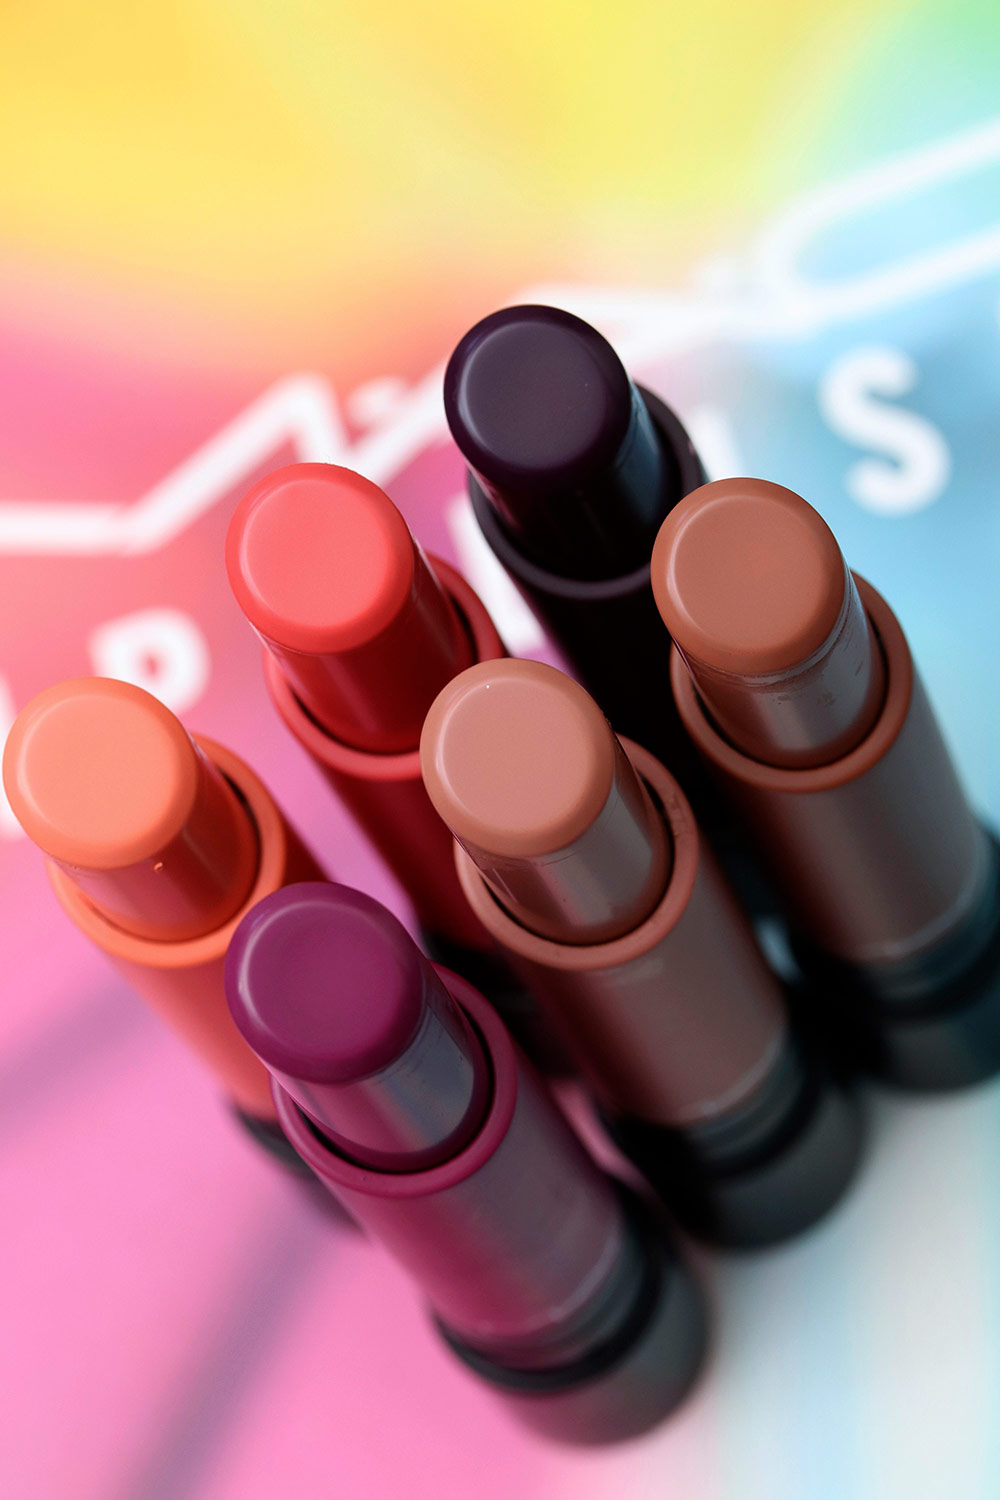 mac liptensity lipsticks october 2017